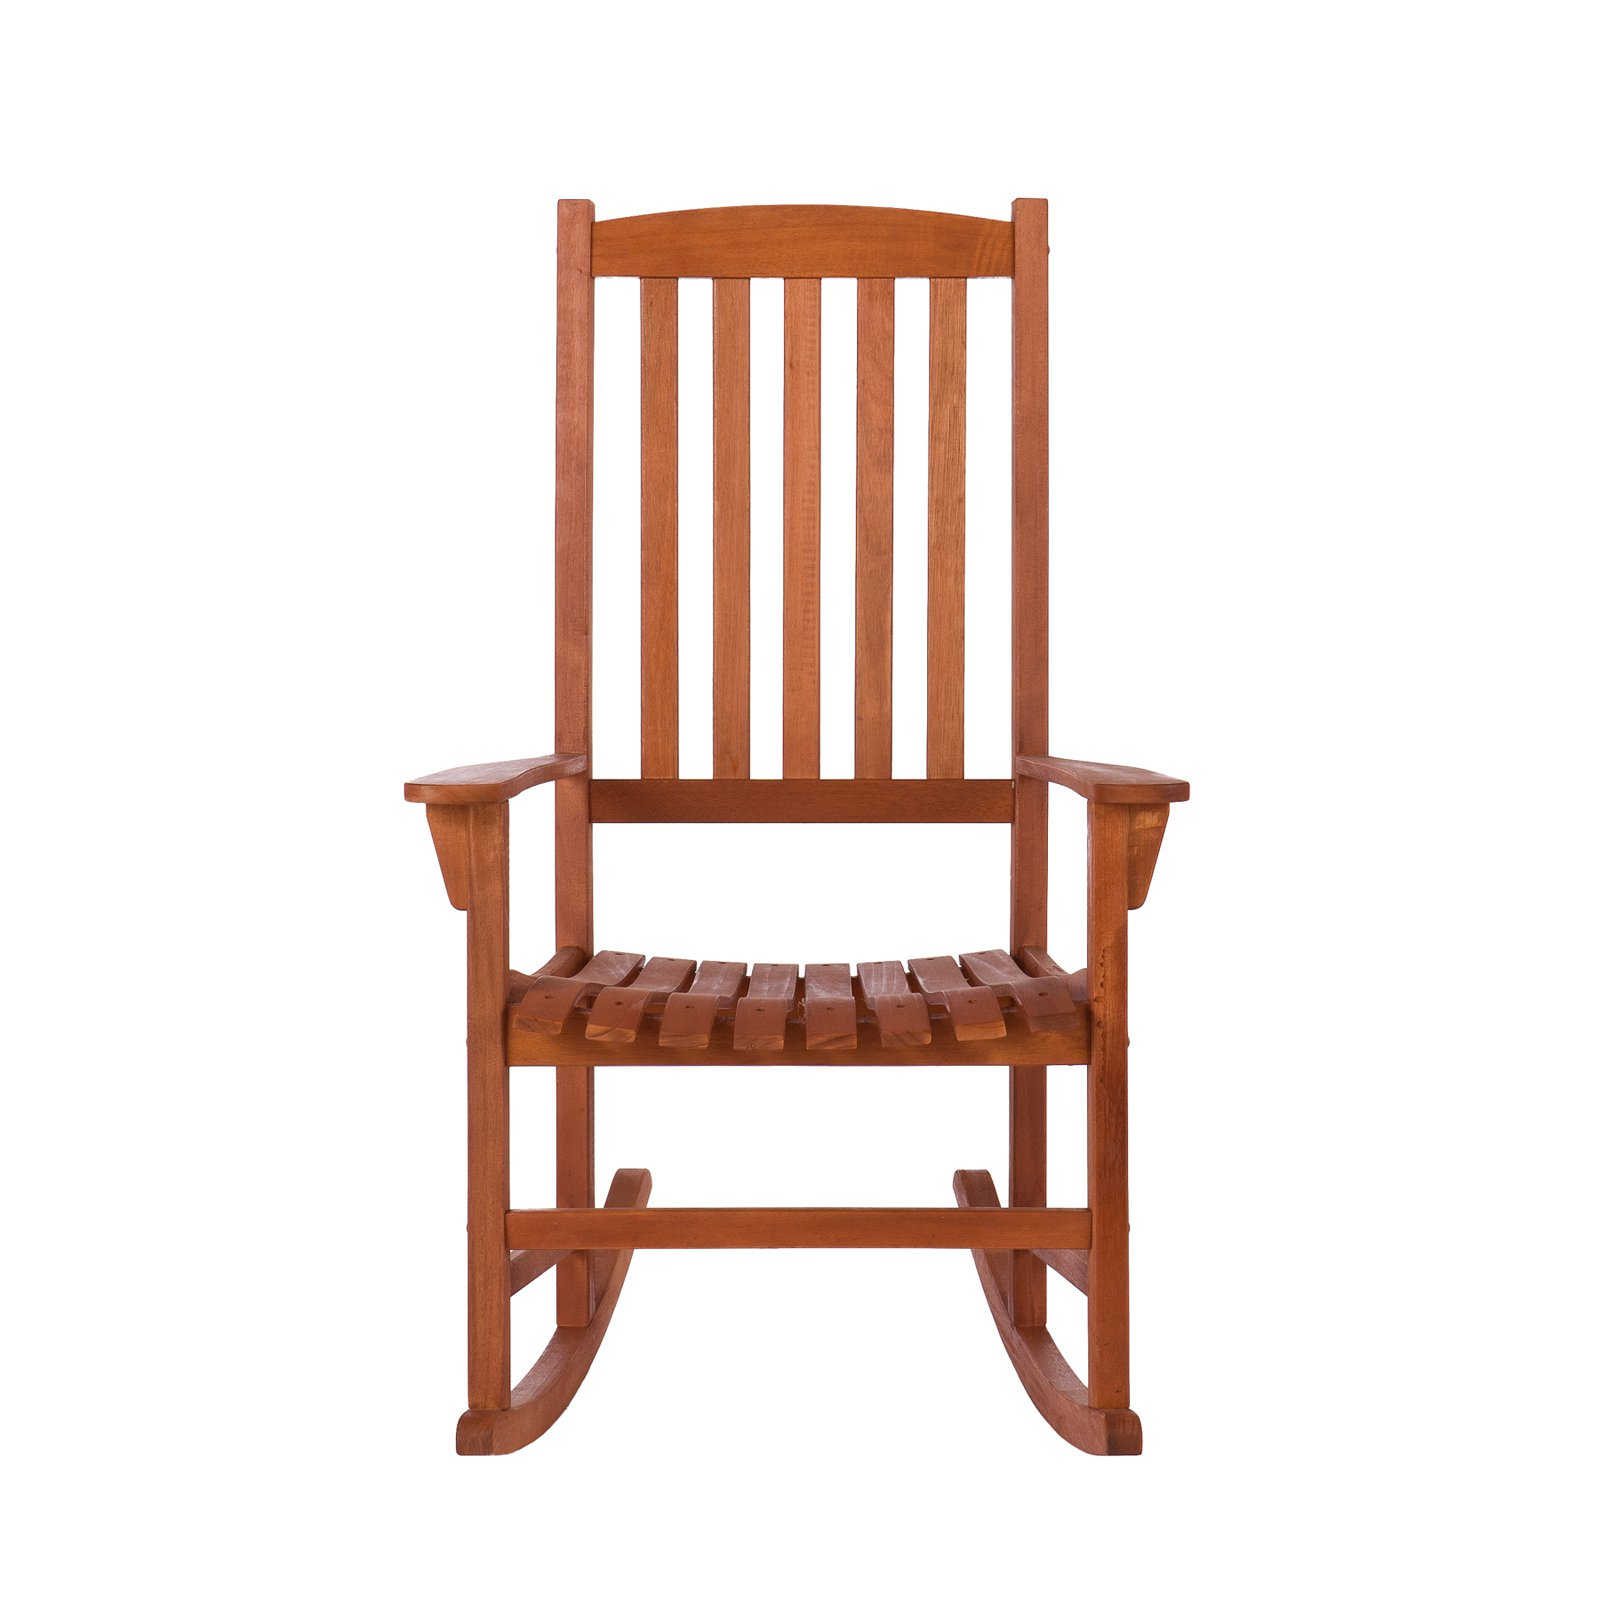 Southern Enterprises Eucalyptus Porch Rocker